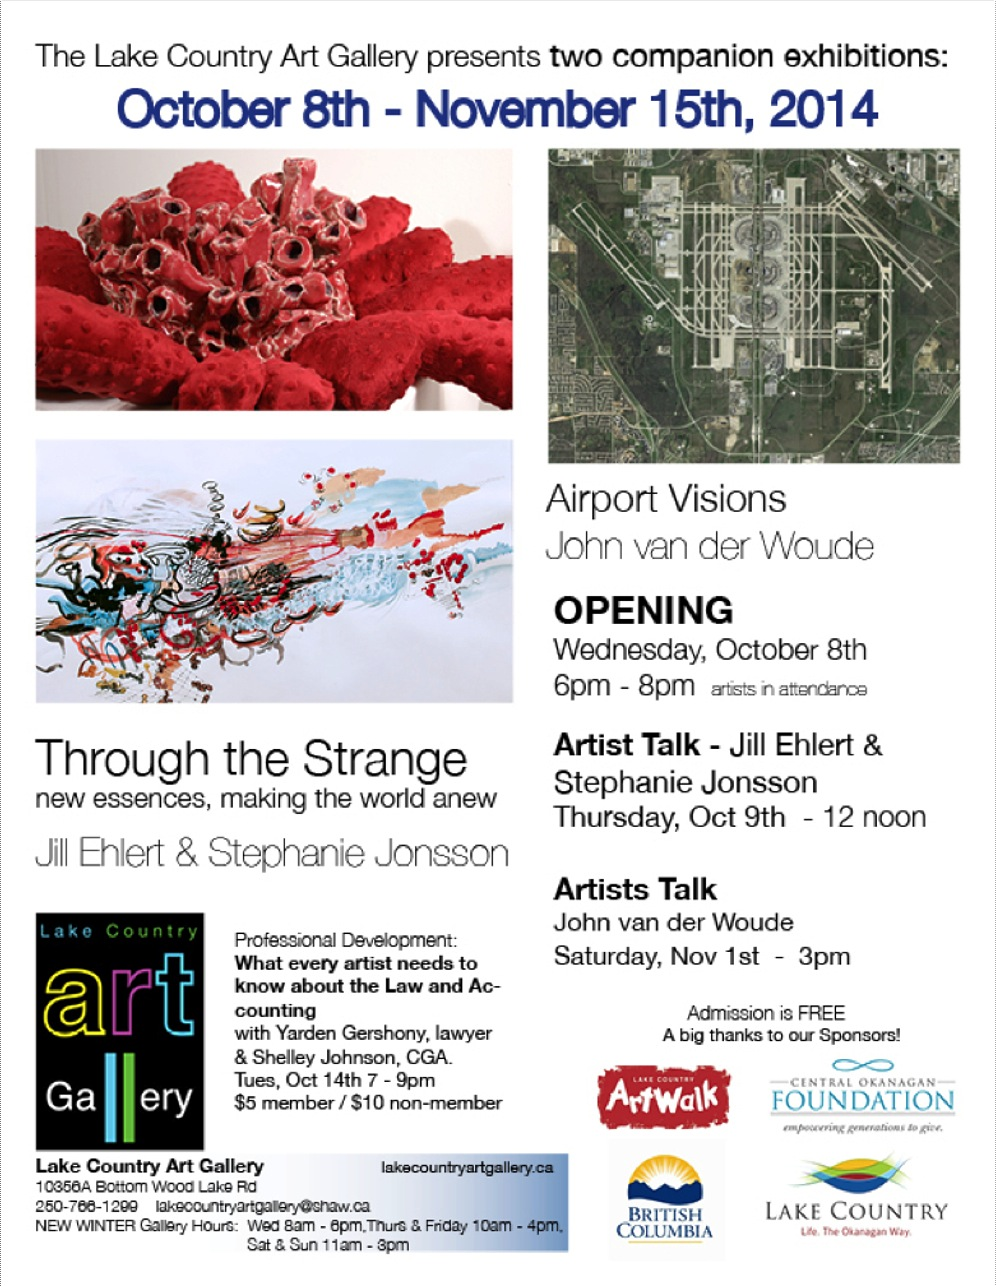 "For Immediate Release :  Two new exhibitions open at the Lake Country Art Gallery - Oct 8th. 2014  The Lake Country Art Gallery is pleased to present two concurrent exhibitions from October 8th - November 15th, 2014. The first exhibition,   ""Through the Strange - new essences, making the world anew""   ,  presents work by Vancouver-based artist Stephanie Jonsson and Jill Ehlert of Cobble Hill, on Vancouver Island. The second exhibition,   ""Airport Visions "" , presents works by local artist John van der Woude.   ""Through the Strange - new essences, making the world anew""  is an exhibition of mixed media work that encompasses drawing, painting, sculpture, ceramics and textiles by Jill Ehlert and Stephanie Jonsson.   Jill Ehlert's  works take the form of intricately layered drawings and collages that pull from a wide range of interests: nature, geology, organic forms, cellular structures, cycles of metamorphosis and regeneration. Objects from the natural world and manufactured objects are placed side-by-side, in direct relation, to draw attention to the discovery of similar patterns and forms. In her collages, actual objects, like books and lace, are incorporated into drawn and painted compositions.  In  Stephanie Jonsson's  work, there is a similar interest in natural forms, which she transposes into ceramic and textile sculptural pieces. She plays with the contrasts of hard against soft, furry against cold and sharp to create new hybrid plant / animal creatures that are both familiar and newly strange.  This exploration of finding the strange in the familiar is extended in  ""Airport Visions"",  in a solo exhibition of photographic works by Kelowna artist John van der Woude. van der Woude has taken between 700 - 800 screen captures from Google earth per piece of the world's busiest airports and stitched them together to create composite photographic images that explore ideas of security vs. accessibility and the aerial aesthetics and visual appeal of how airports look from sky.  All the artists will be present at the opening, on Wednesday, Oct 8th from 6 – 8 PM. Jonsson and Ehlert will be on hand for an artist talk on Thursday, Oct 9th at 12 noon. They will speak further about their work in this exhibition, as well as previous work. van der Woude will have an artist talk on Saturday, Nov 1st at 3PM. All events are free and open to the public.  Katie Brennan, Curator   http://www.lakecountryartgallery.ca"